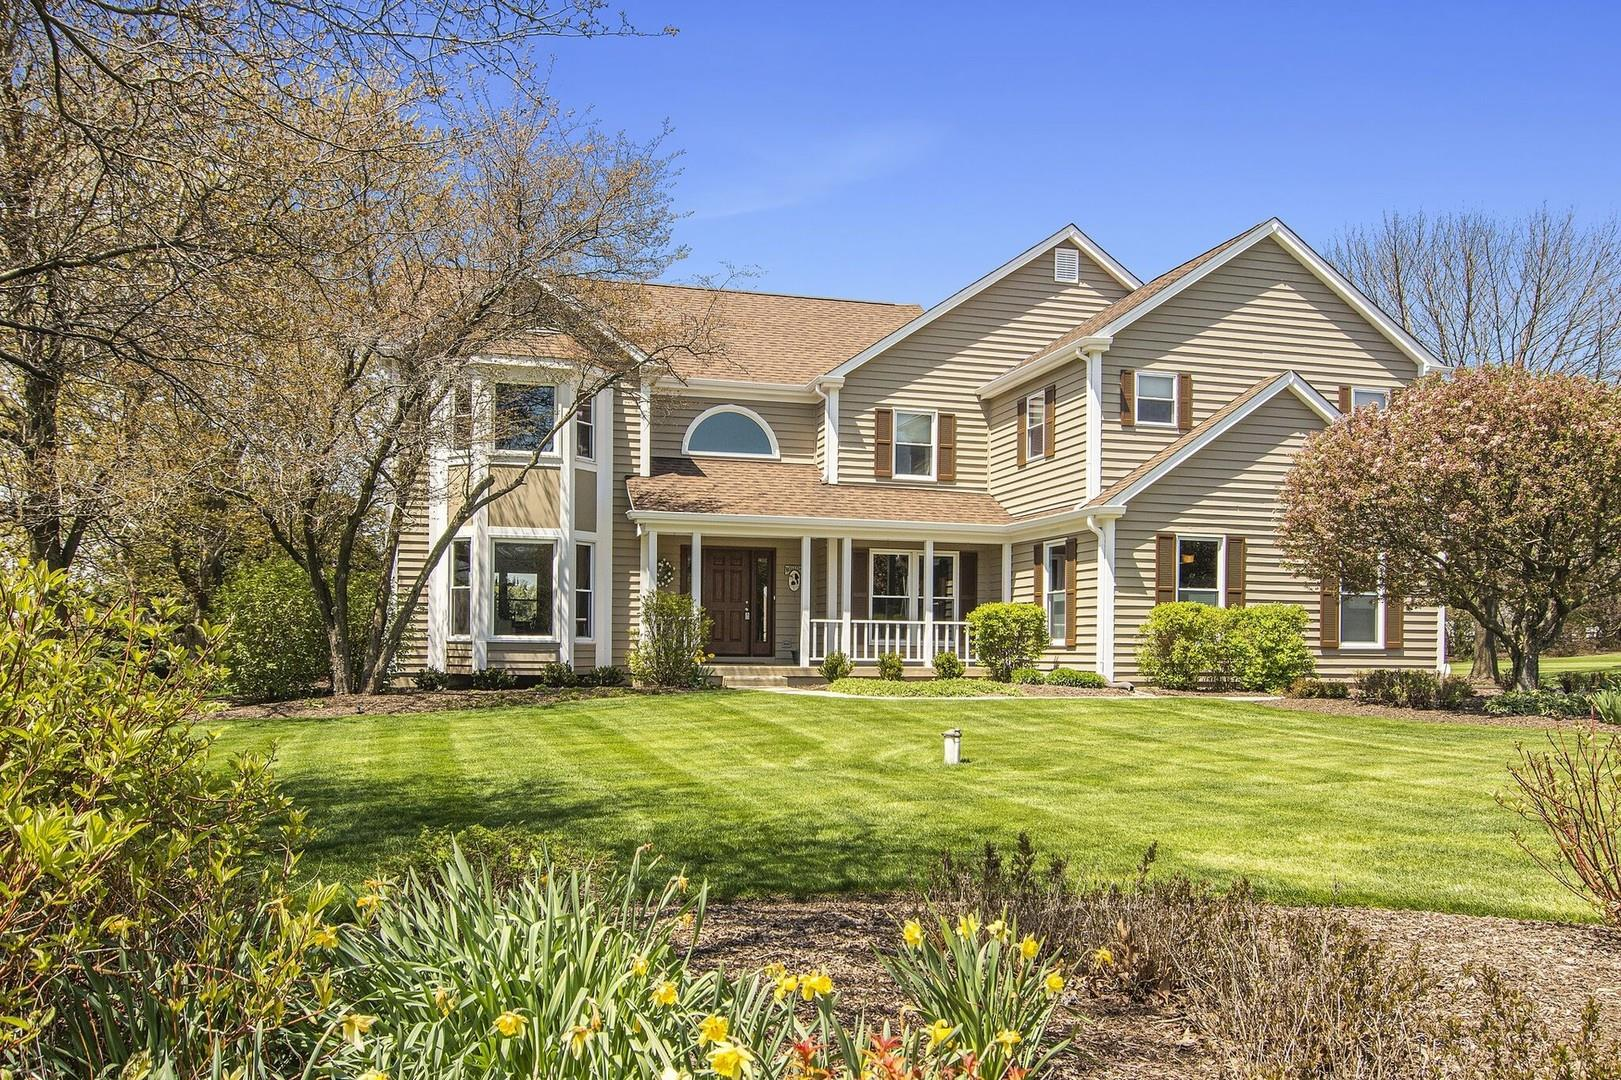 24 Steeplechase Drive, Hawthorn Woods, IL 60047 - #: 10718112